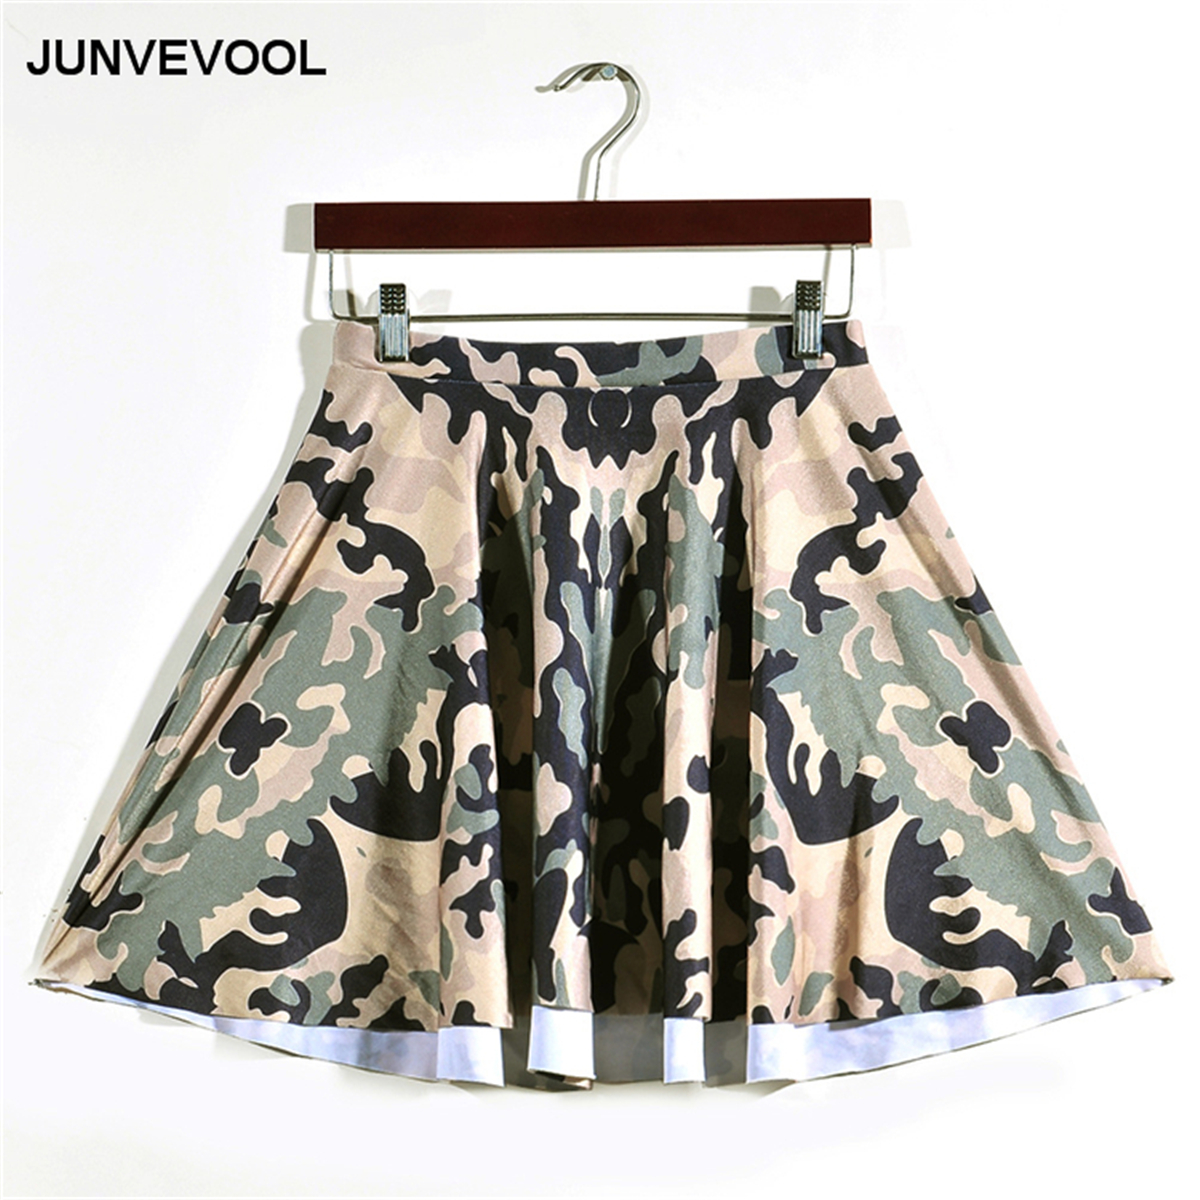 Camouflage Summer Skirt Women Fashion Hot Sale Beachwear Club Party Office Working Skirts Ladies Digital Printing Sexy Clothing